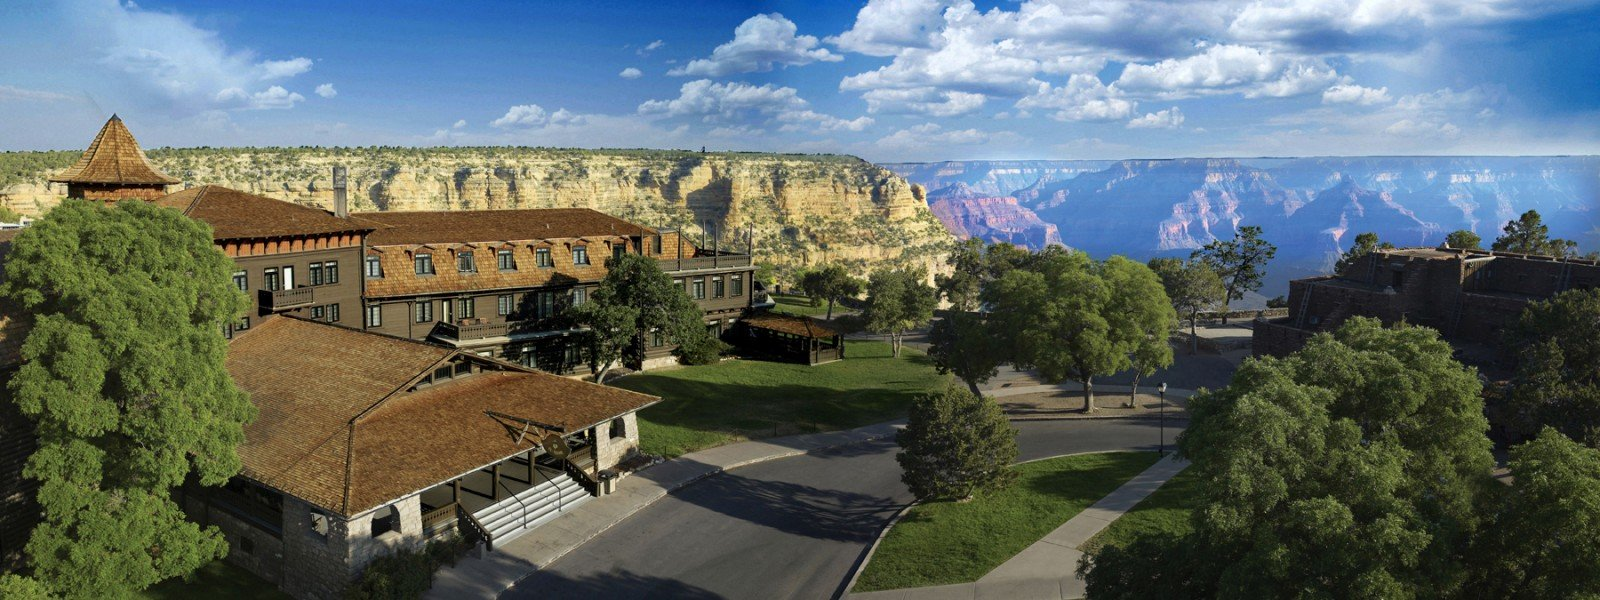 A hotel with canyon in the background